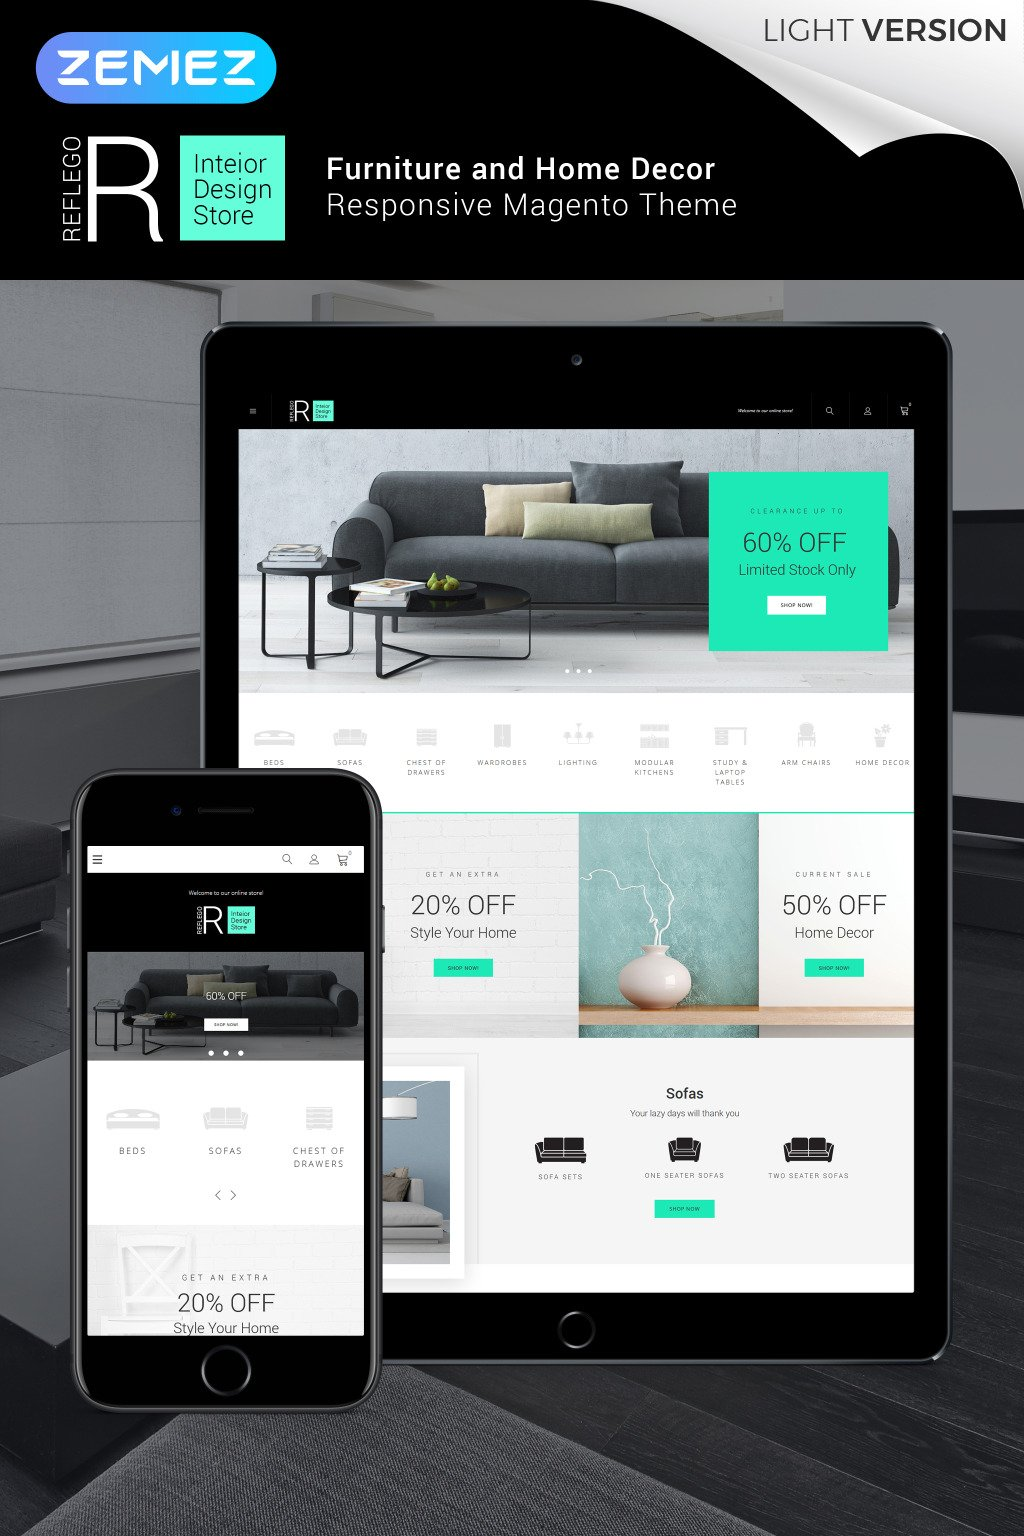 Reflego - Furniture & Home Decor Magento Theme New Screenshots BIG